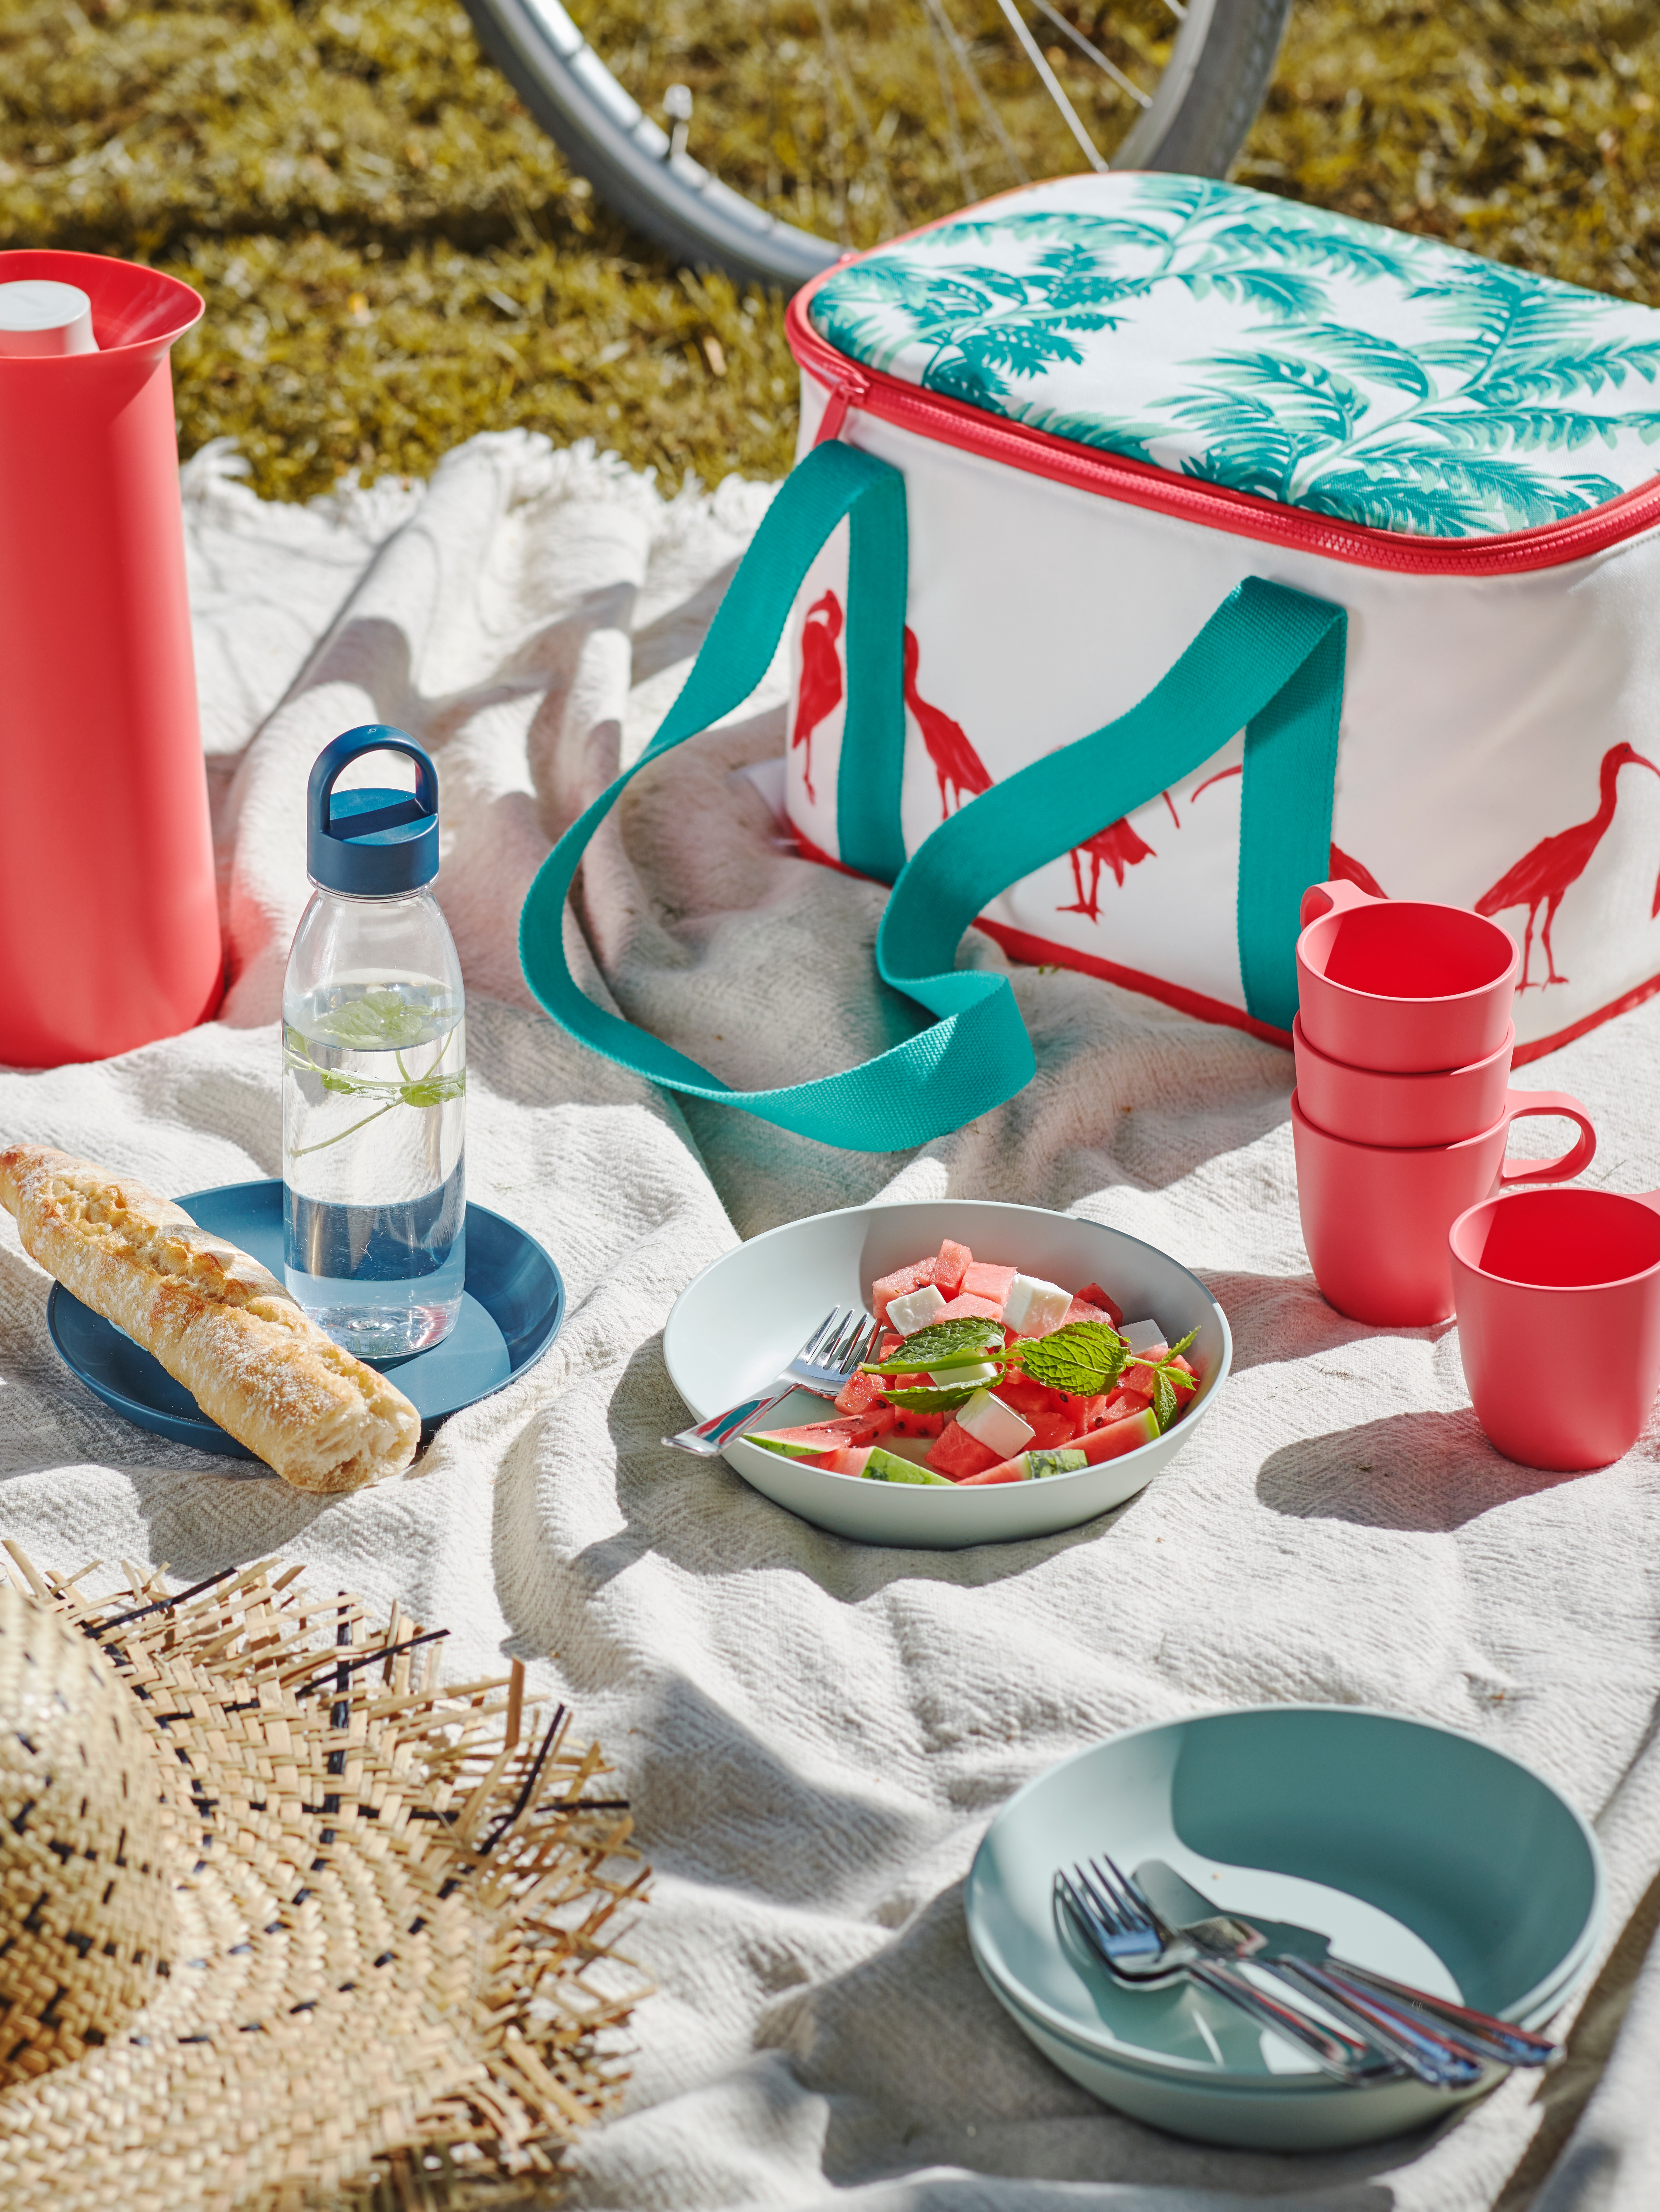 Plates with salad and bread are on a throw on some grass, by a stack of light red TALRIKA mugs, a hat and a cooler bag.